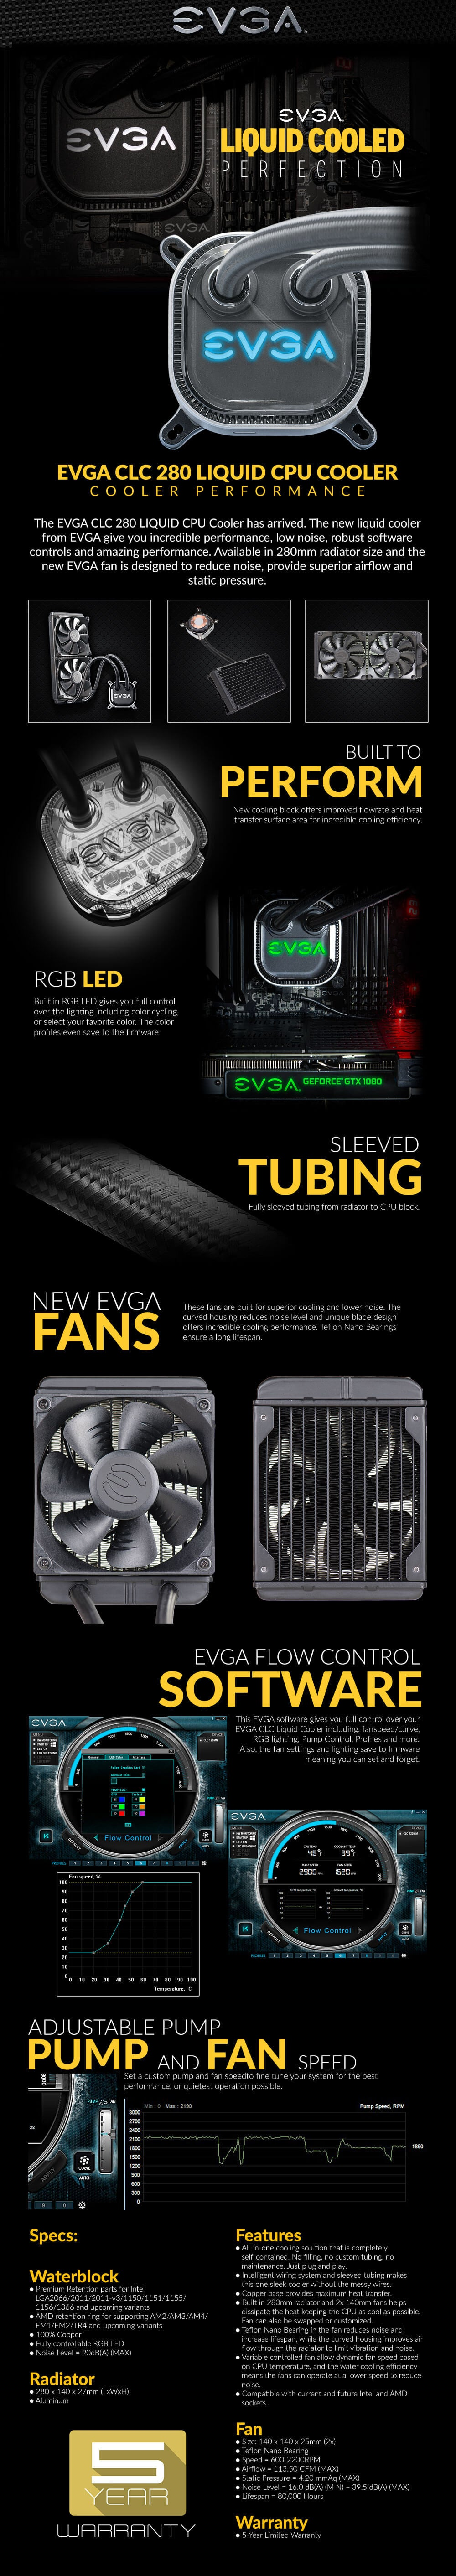 EVGA CLC 280 Liquid / Water CPU Cooler, RGB LED Cooling 400-HY-CL28-V1_VLCanada